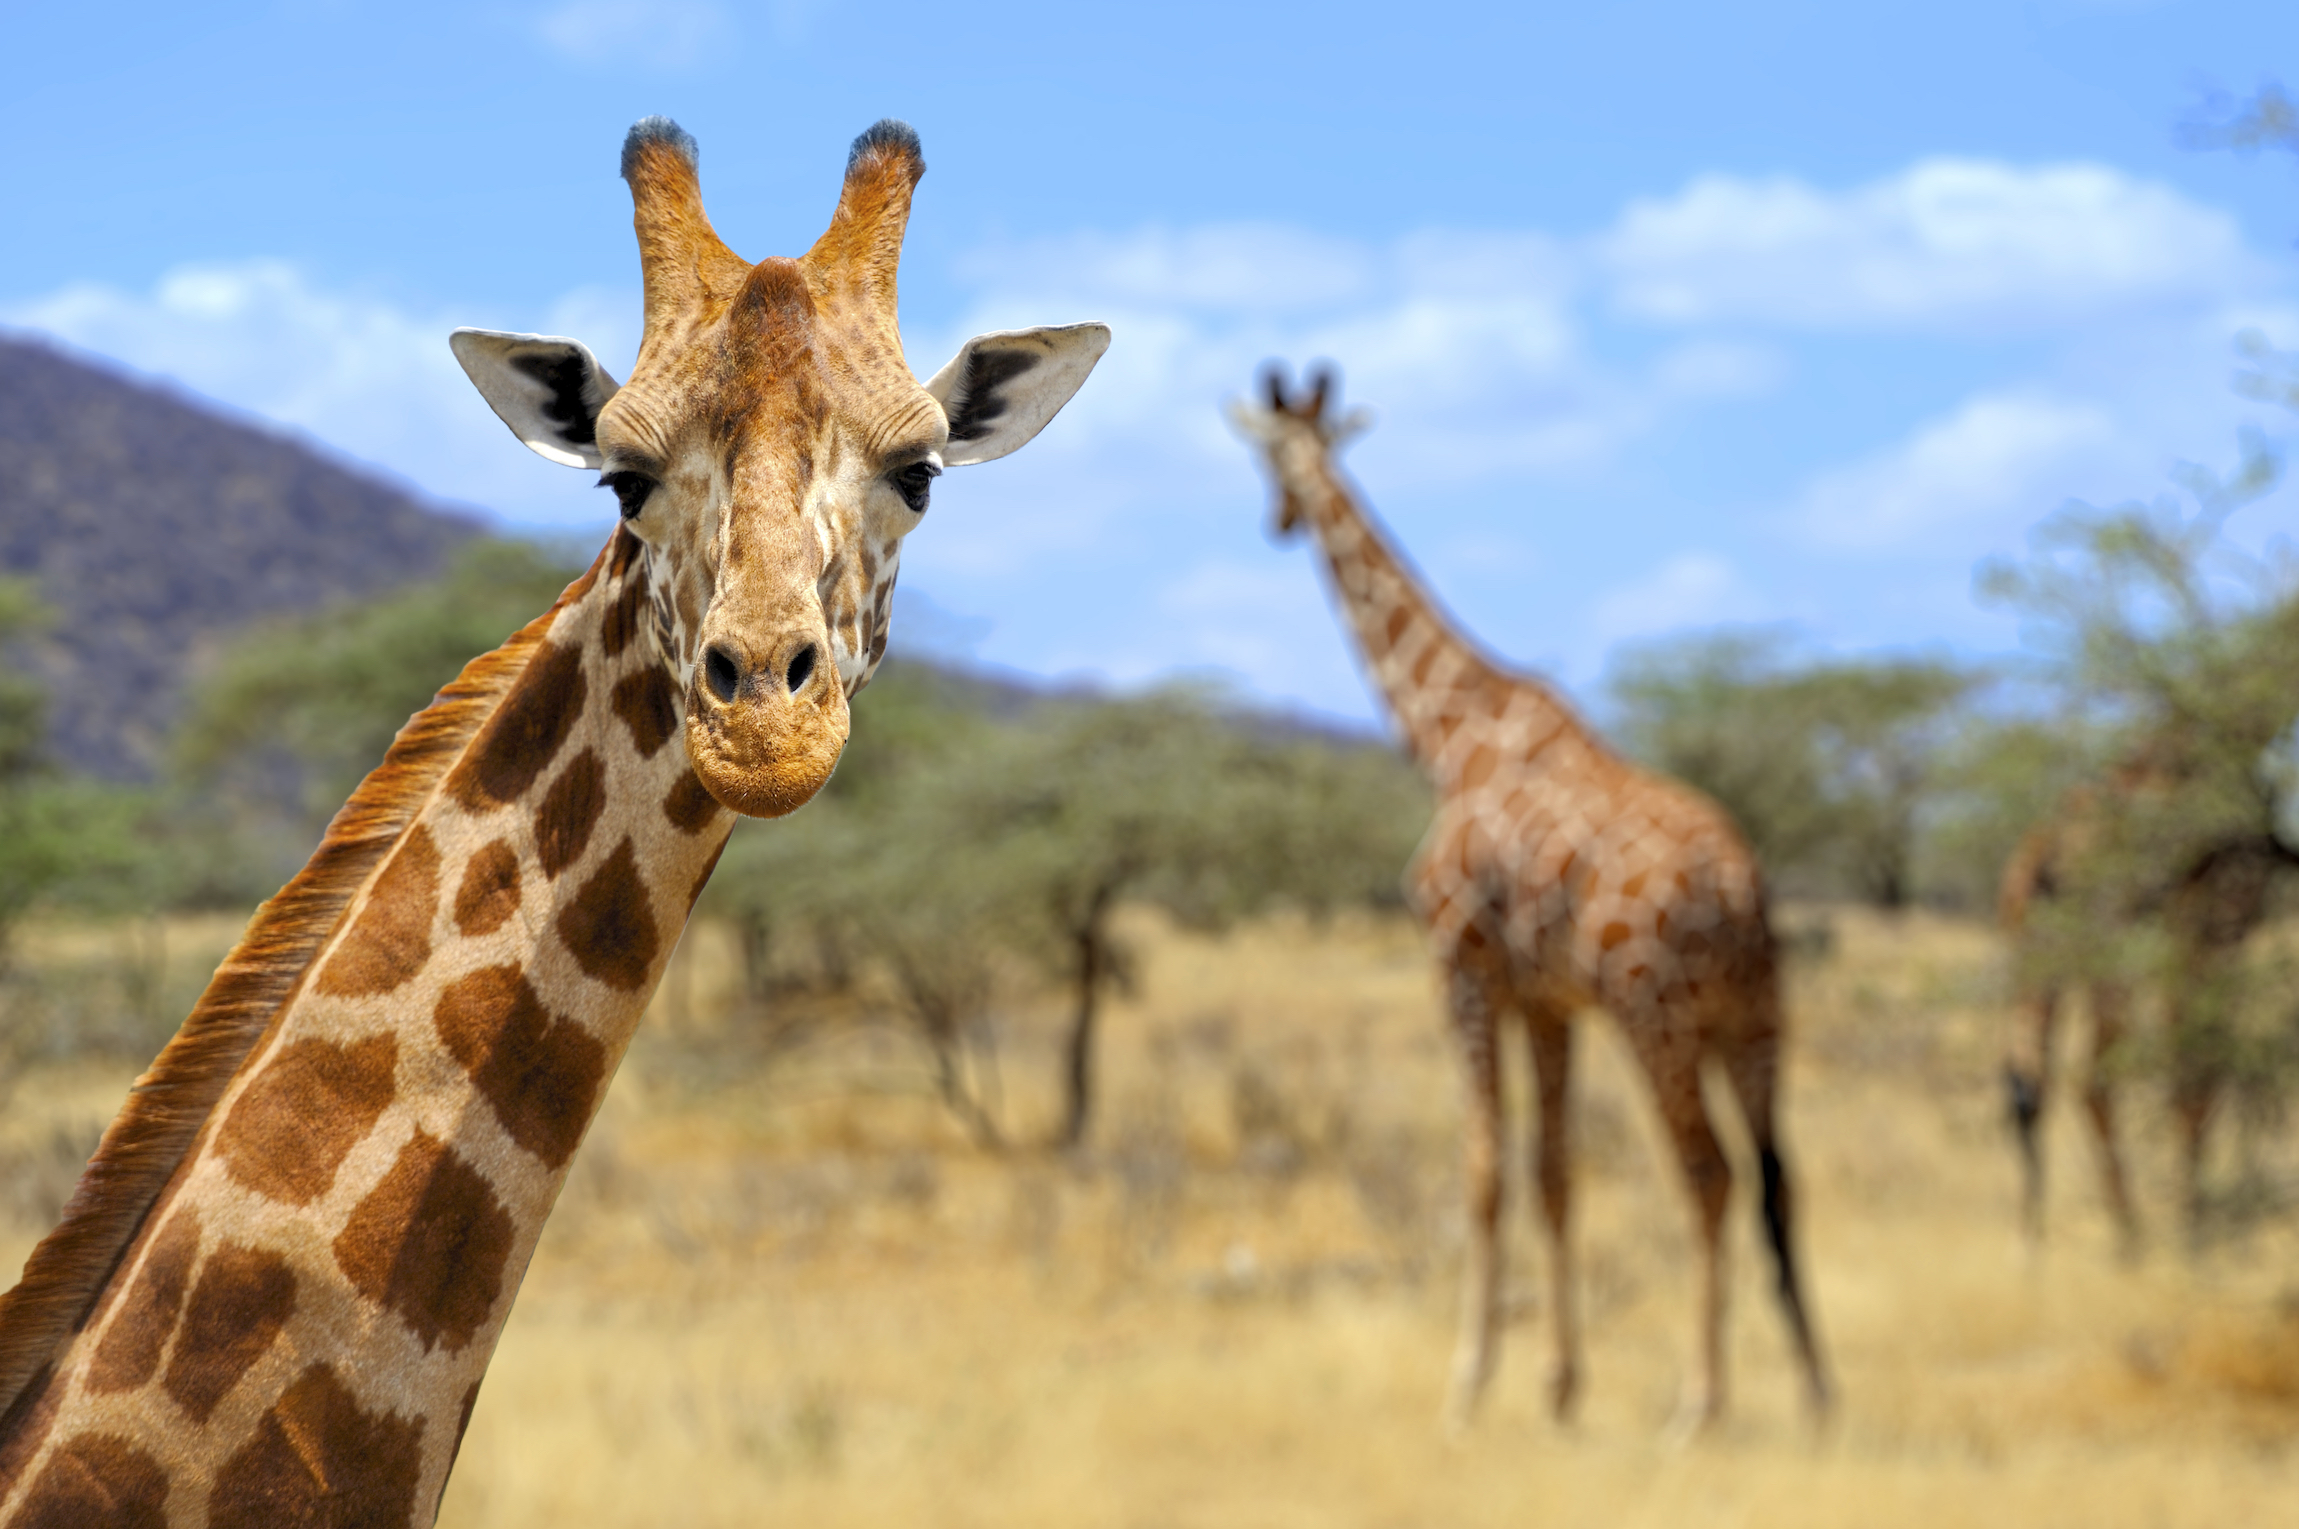 In this edition of our recurring Your World feature, we take a look at the greatest giraffes of Instagram.